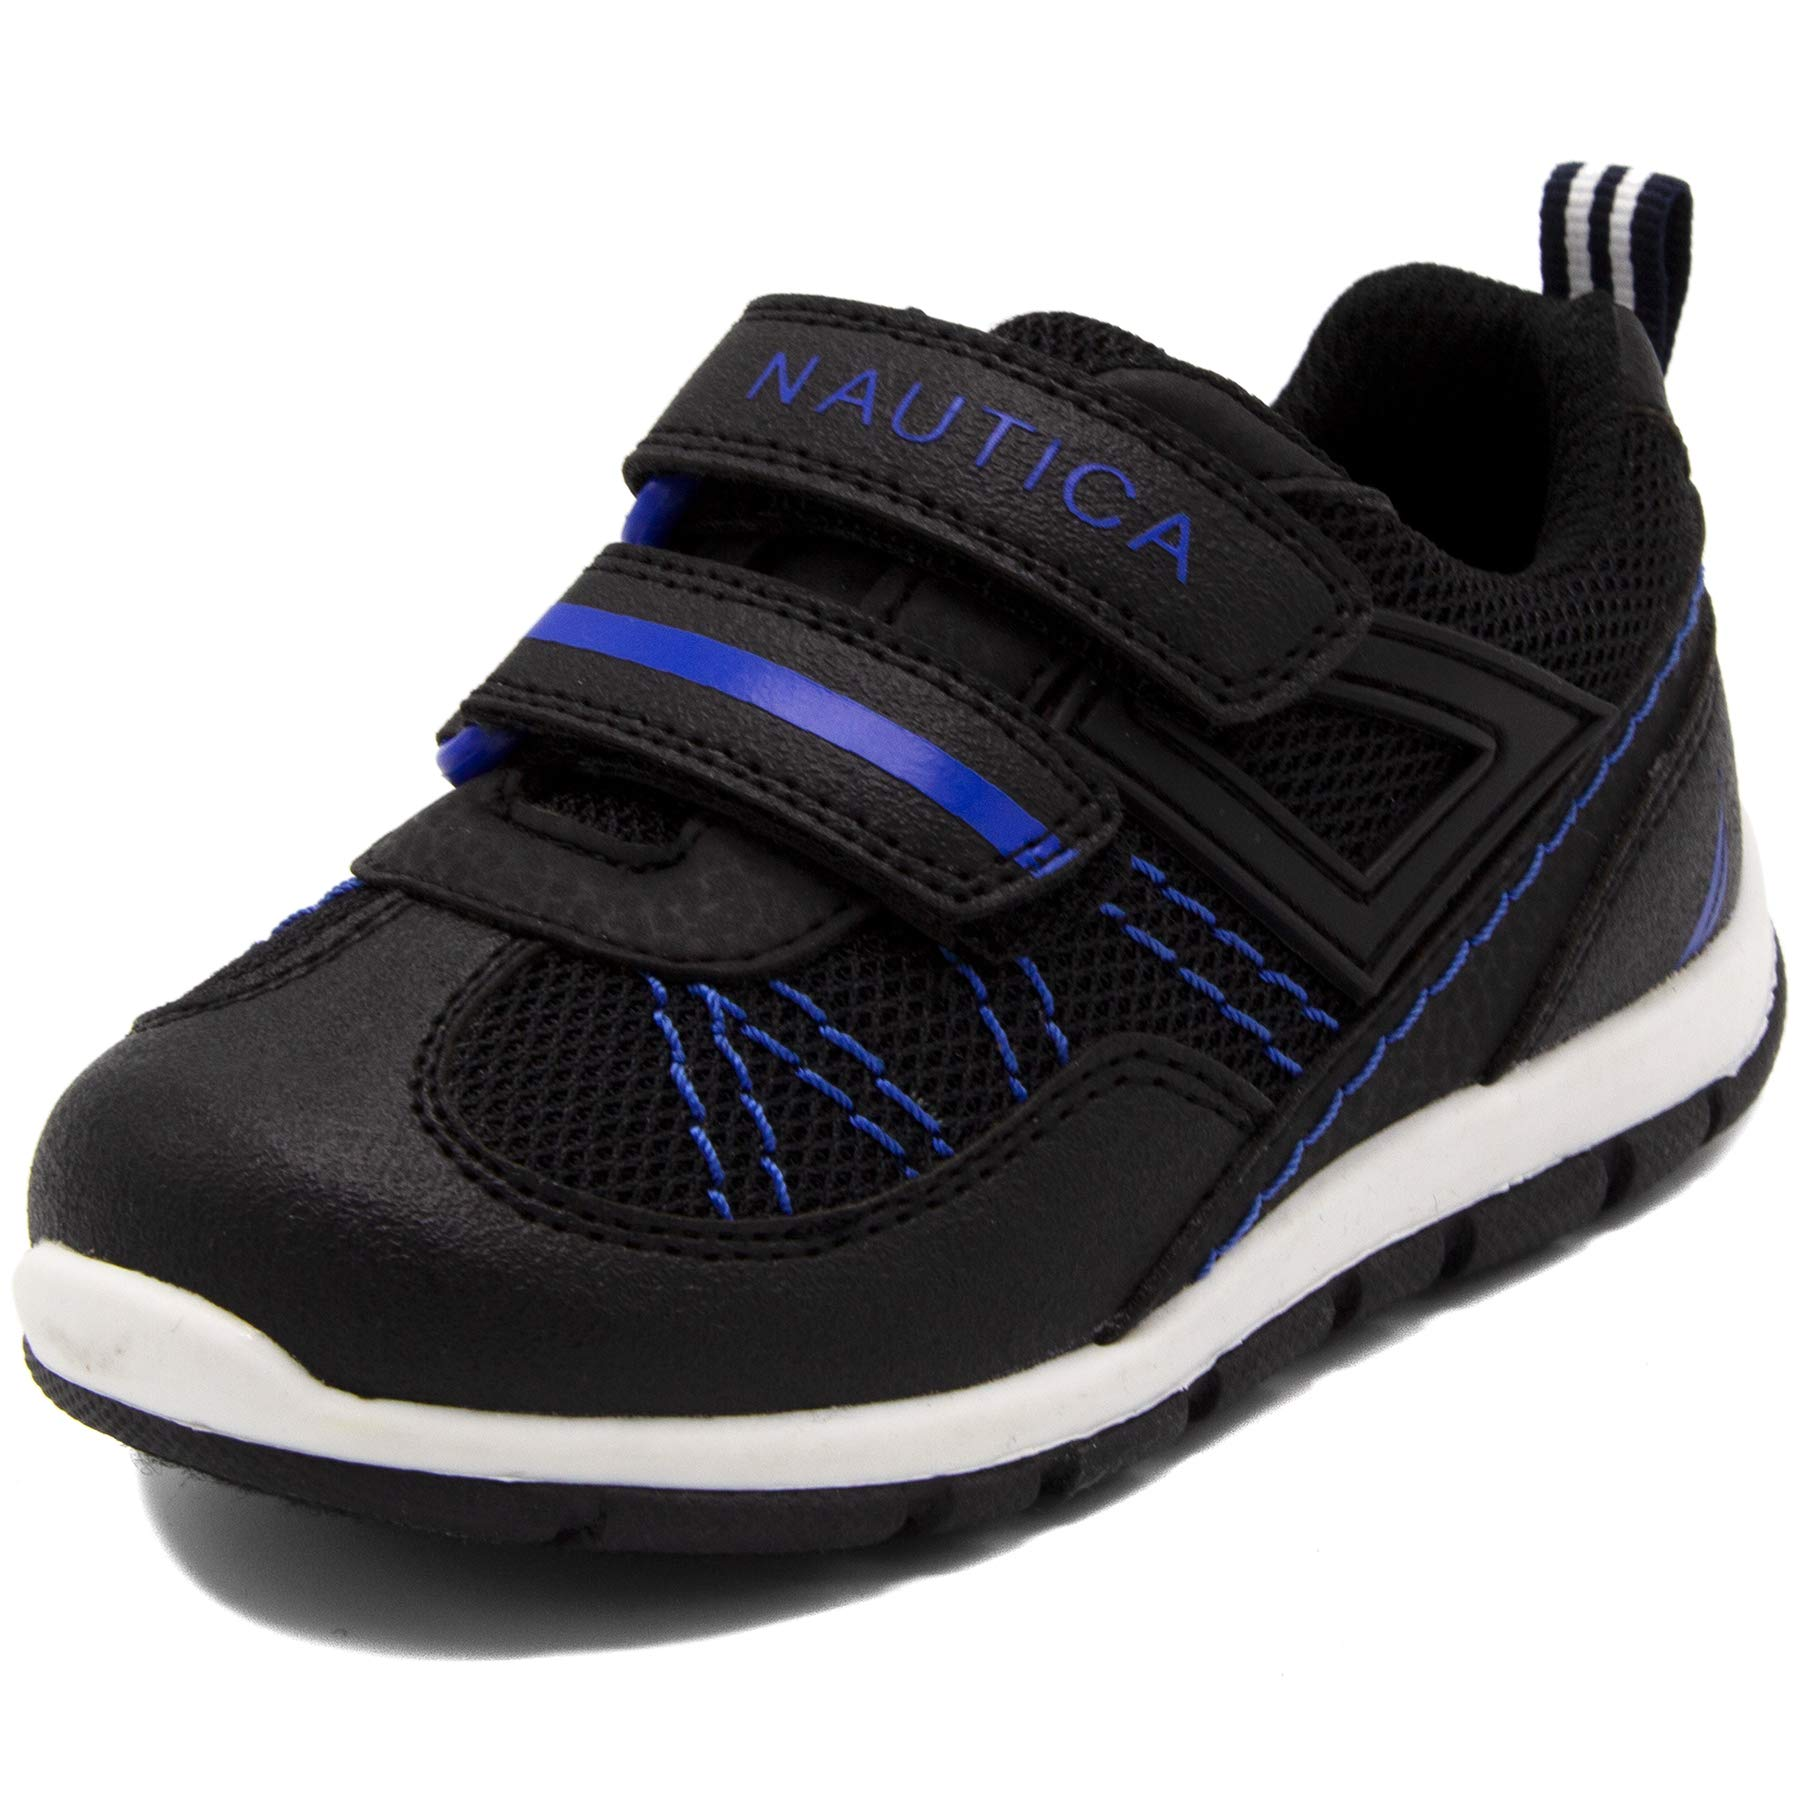 Nautica Kids Averell Sneakers Double Strap Casual Athletic Shoes-Black/Cobalt-9